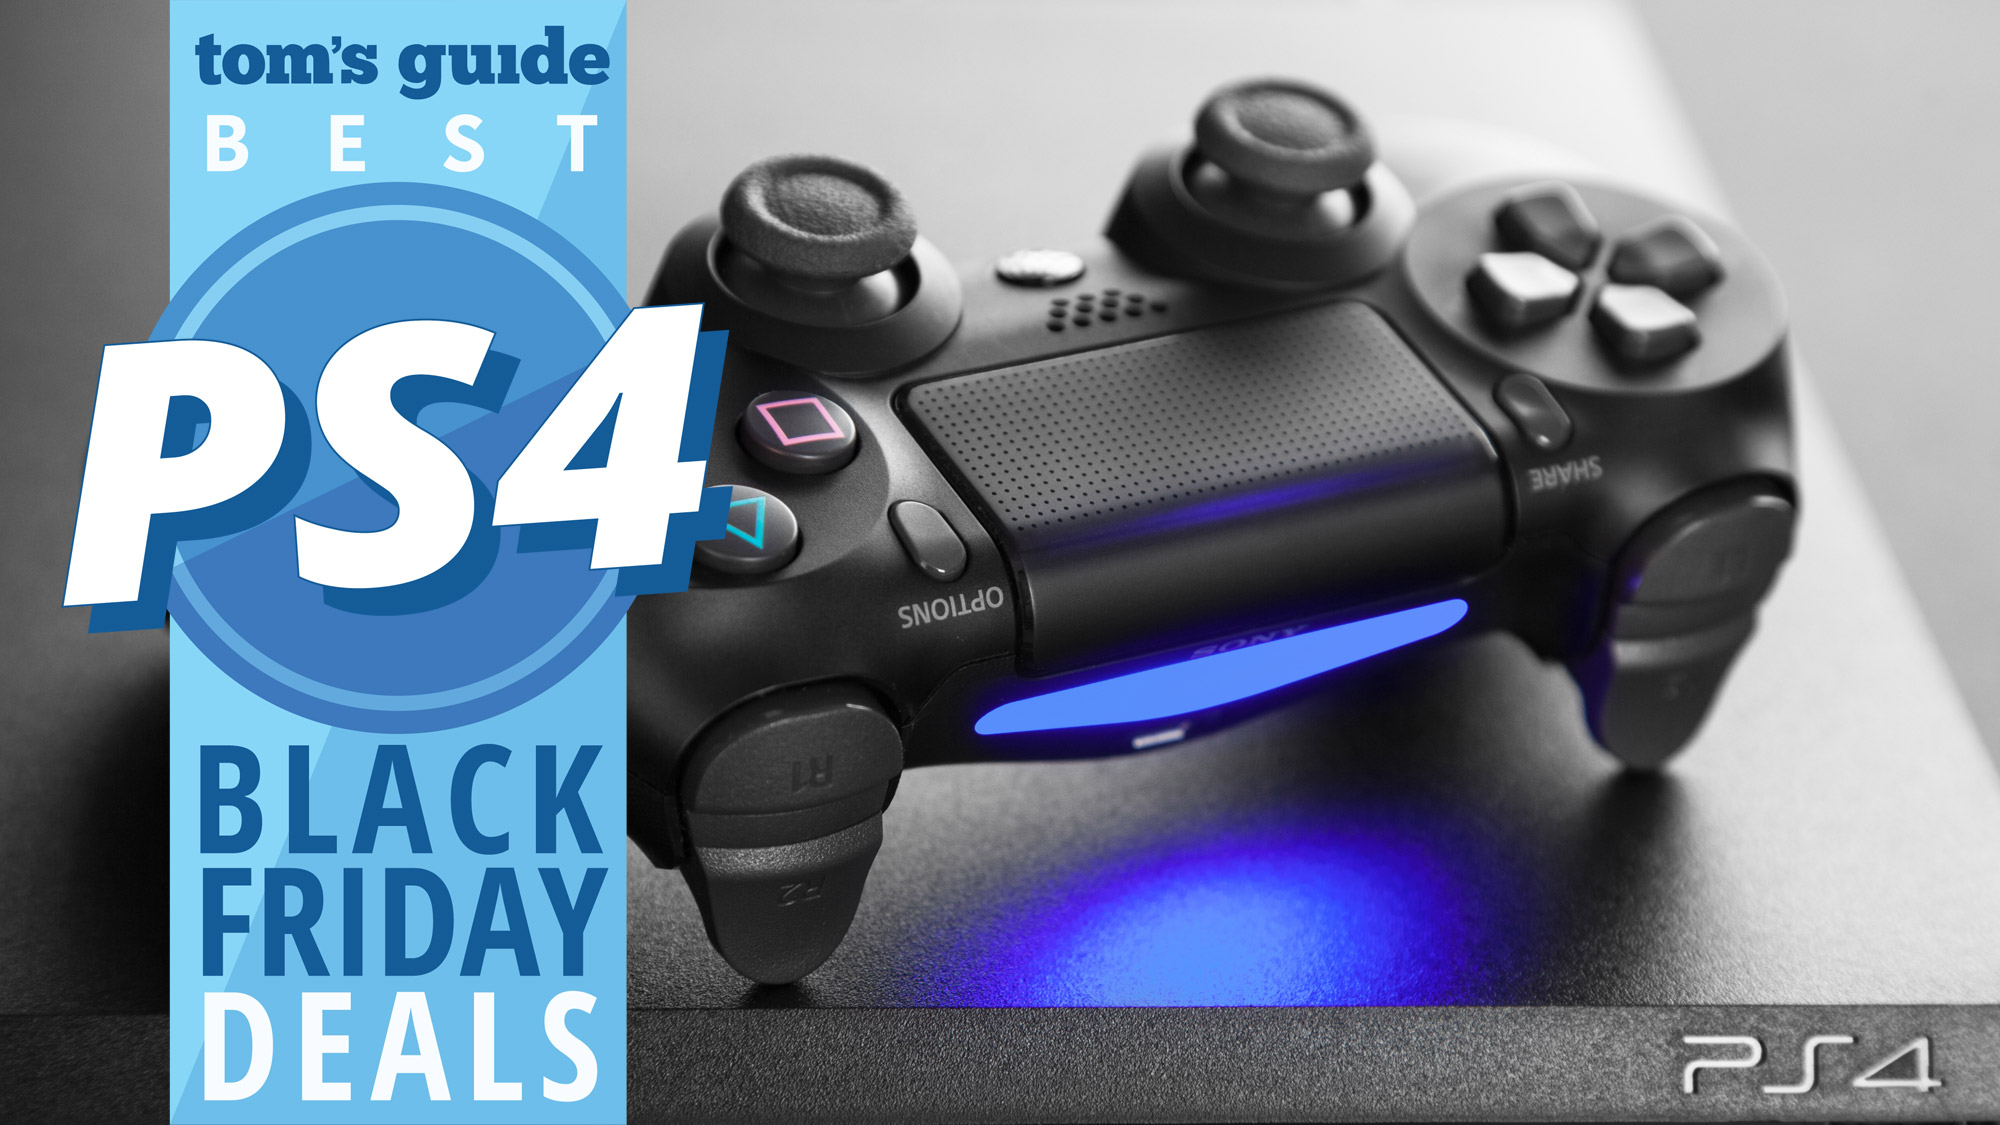 The Best Ps4 Black Friday Deals Tom S Guide